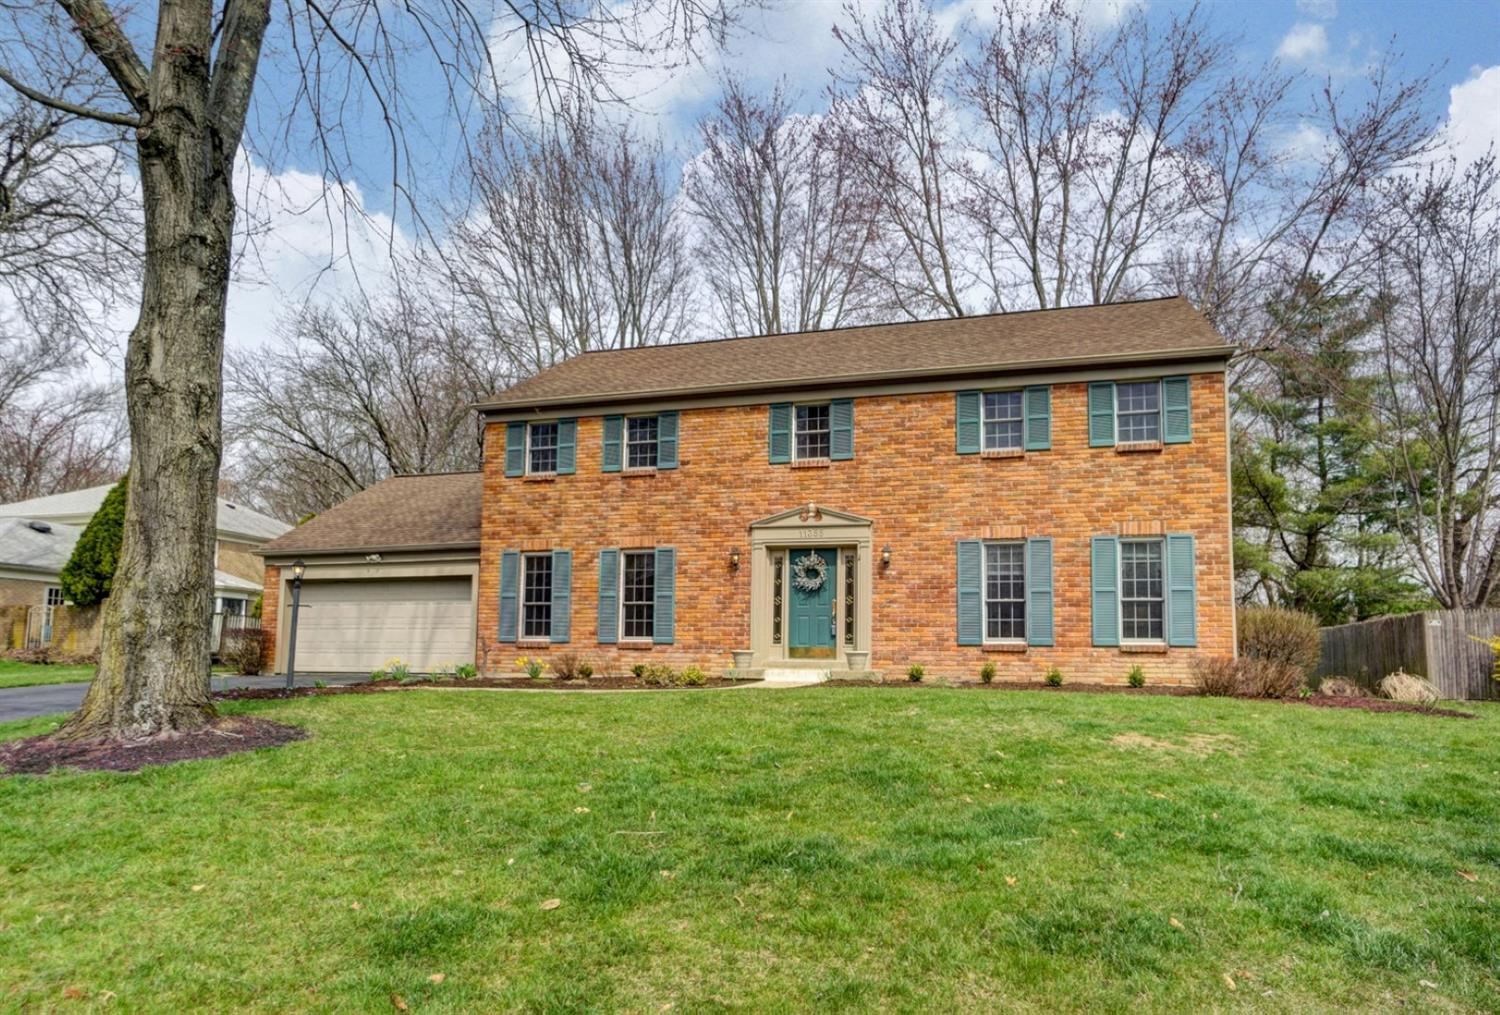 11355 Marlette Dr Sycamore Twp., OH